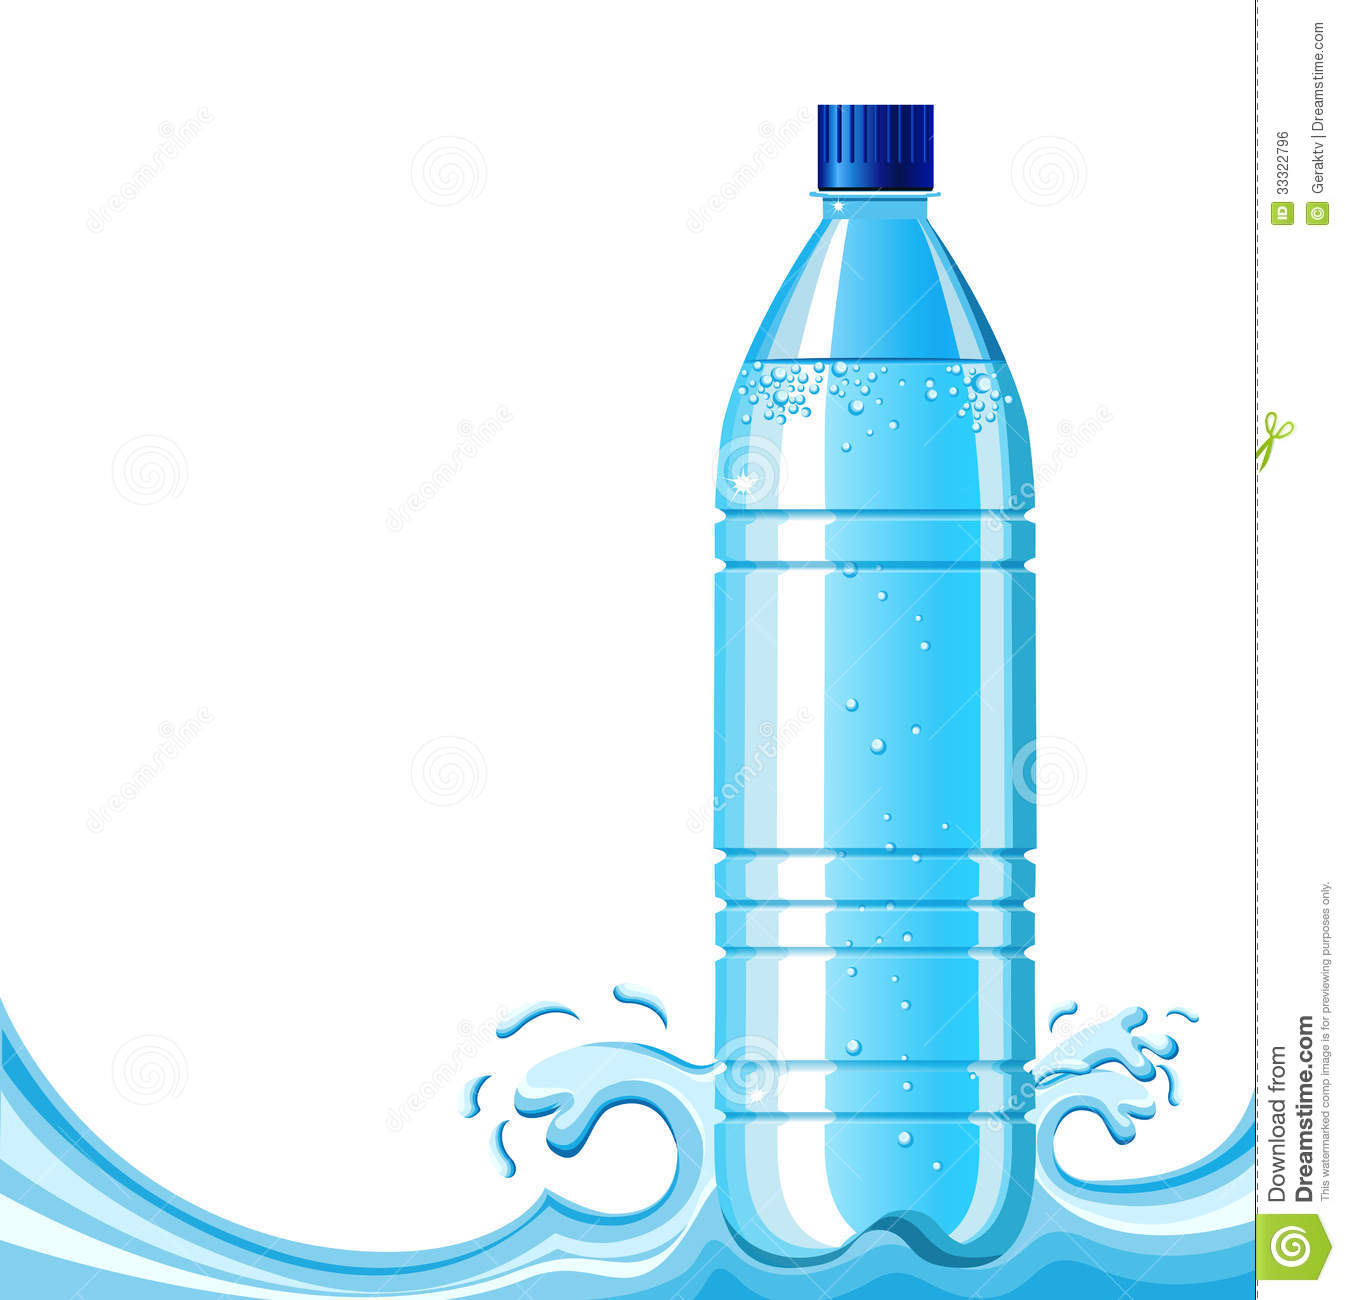 Water Bottle Vector: Bottle Of Clean Water And Splashing Background .Ve Royalty